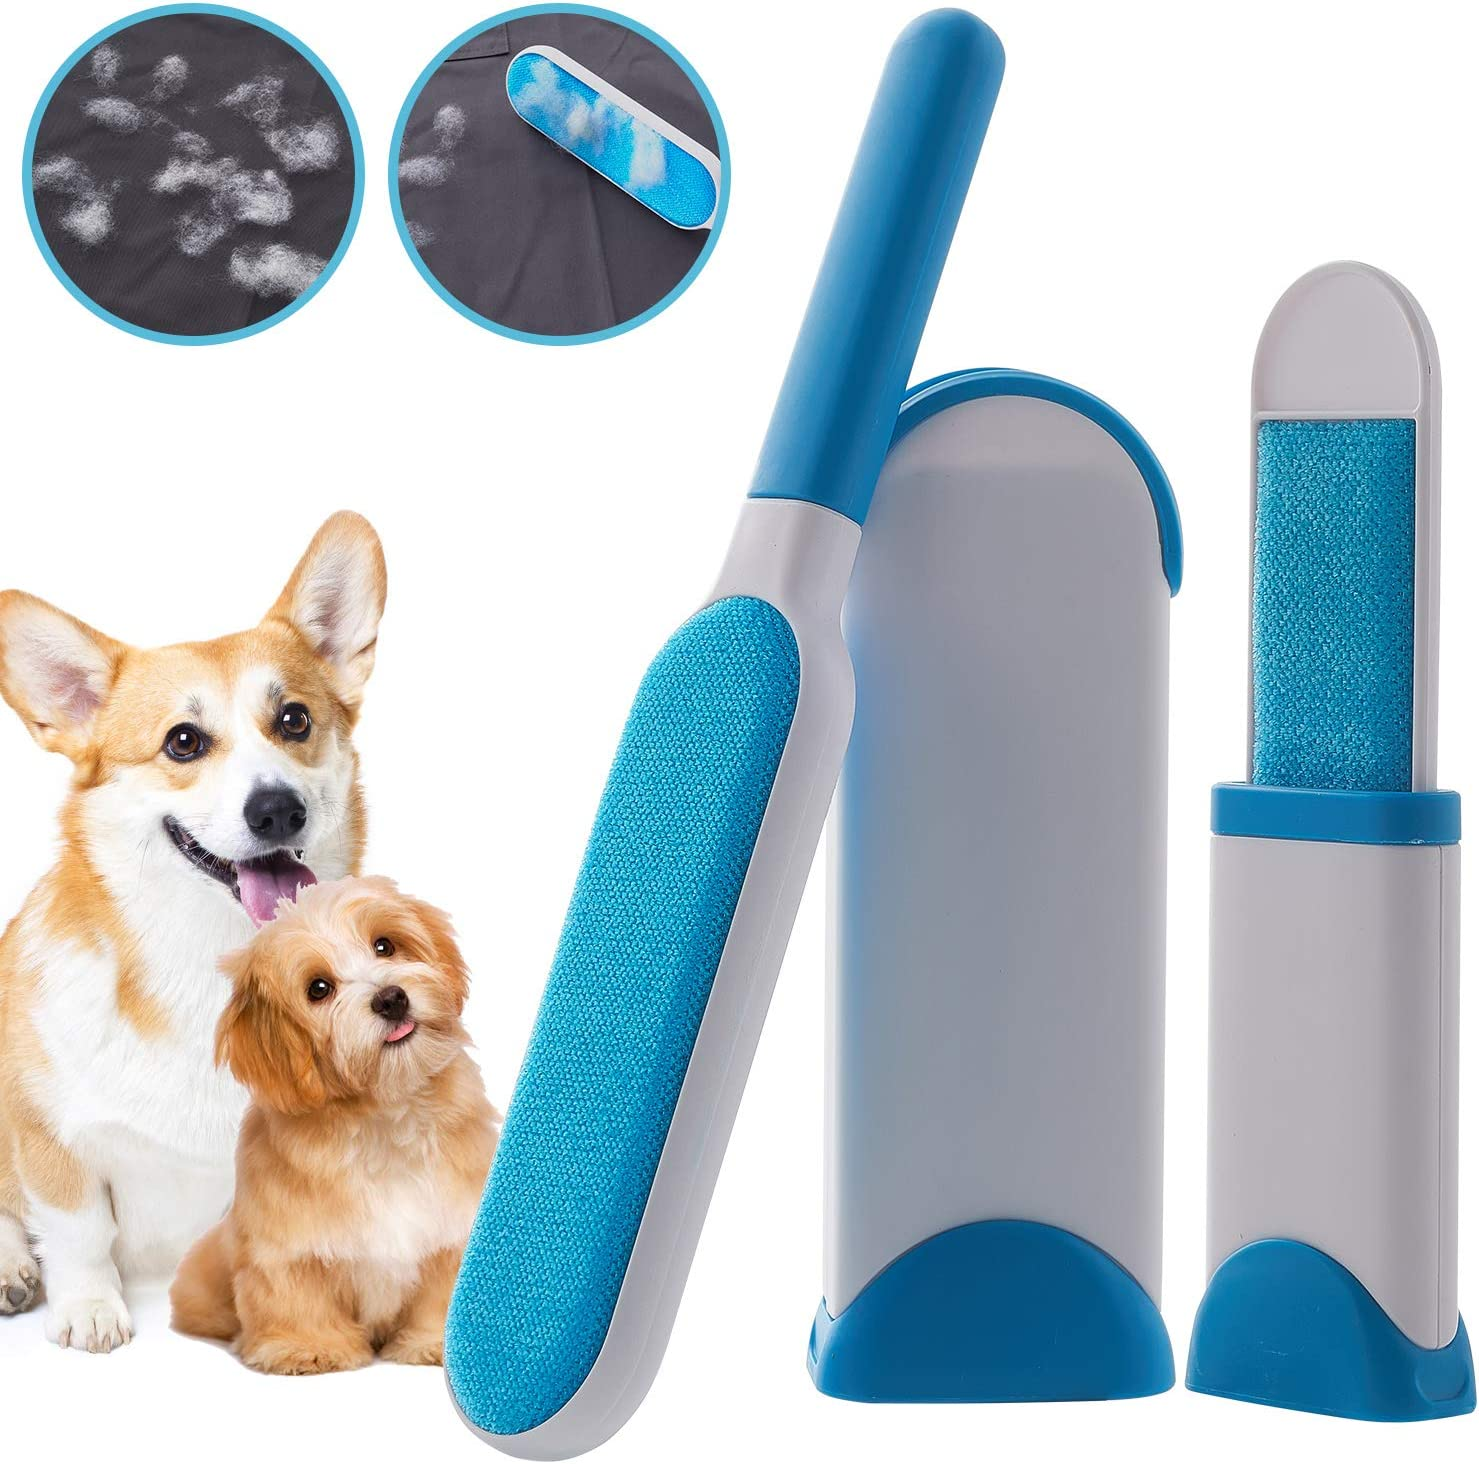 Double-Sided Brush with Self-Cleaning Base Fur /& Lint Removal WELLTED 2020 Updated Pet Hair Remover Brush for Furniture Clothing Car Seat Lint Brush Fur Remover Dog /& Cat Hair Remover